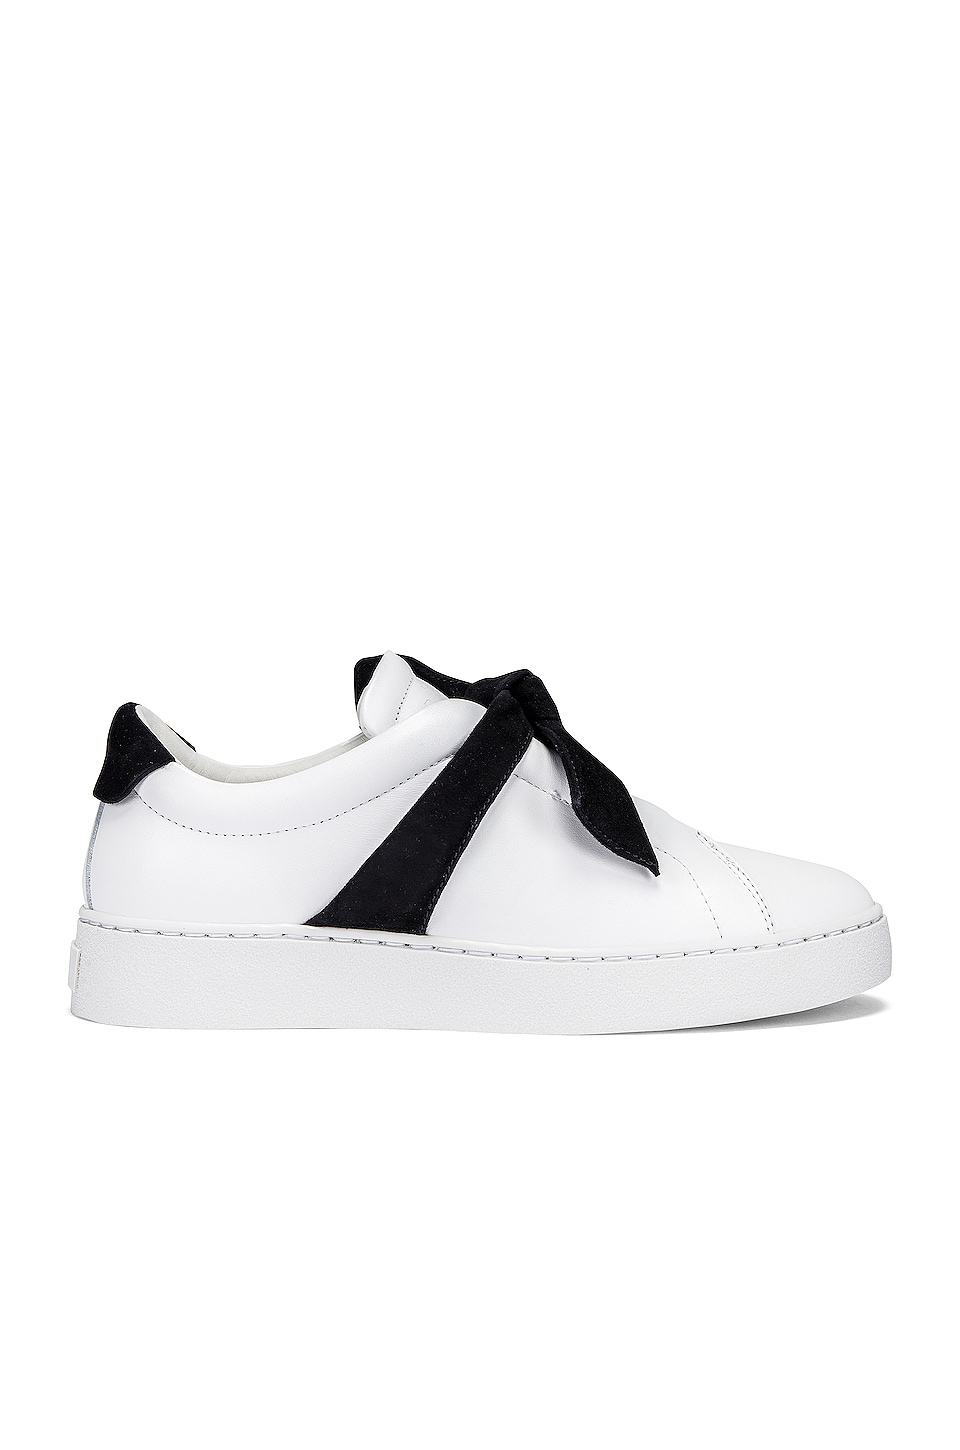 Alexandre Birman Clarita Sneaker in Black & White